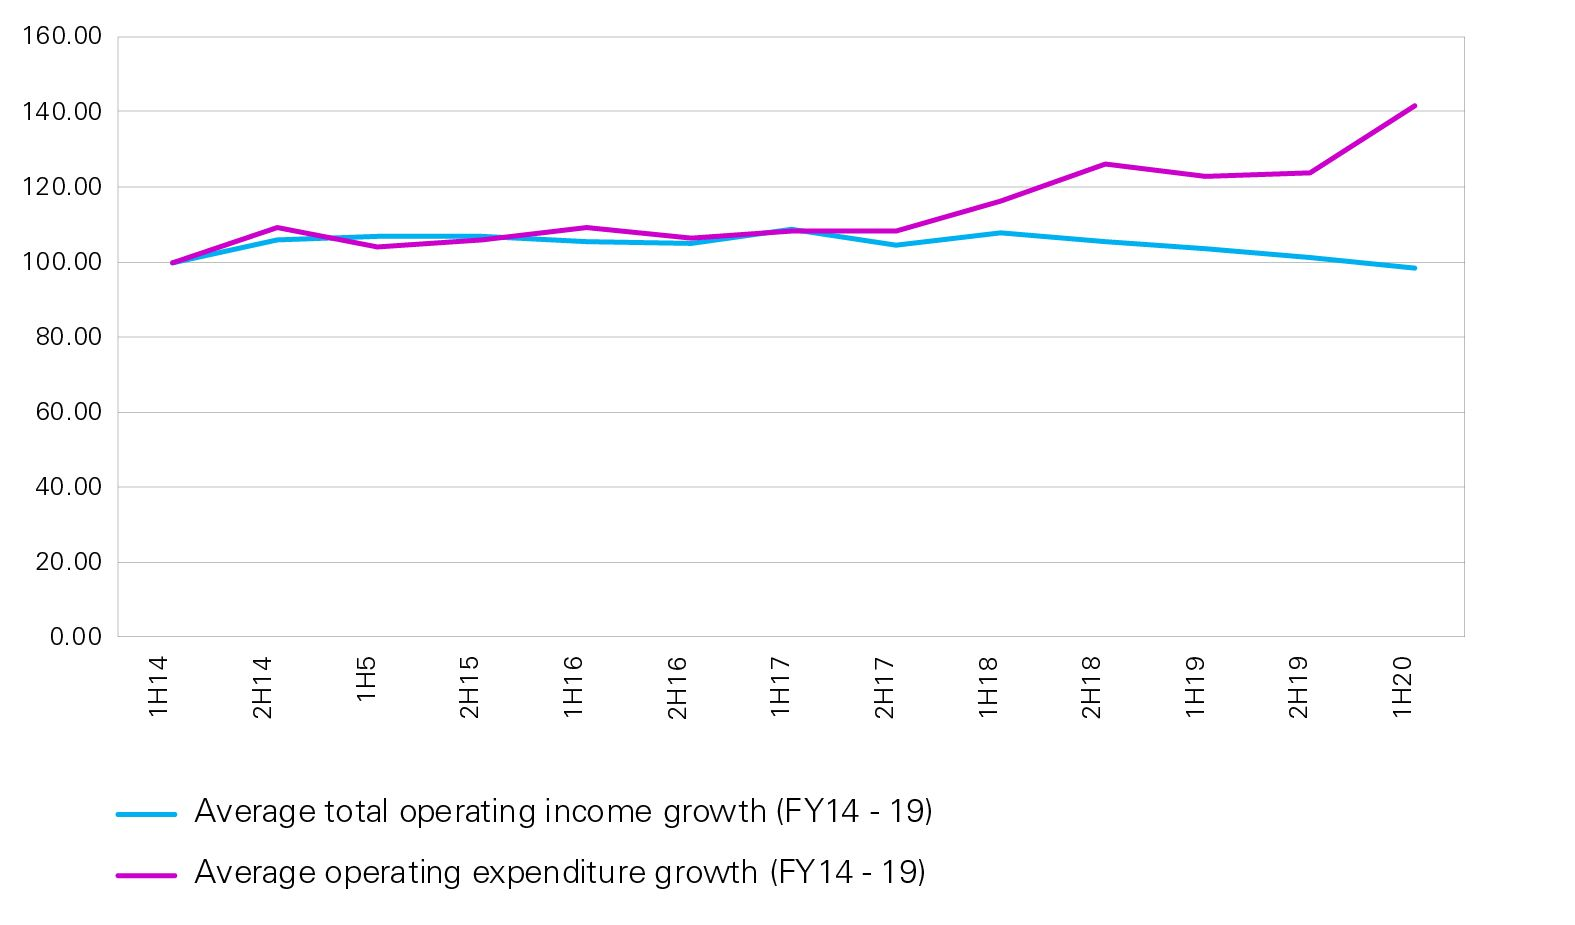 Majors' cost growth has outpaced revenue growth in recent years